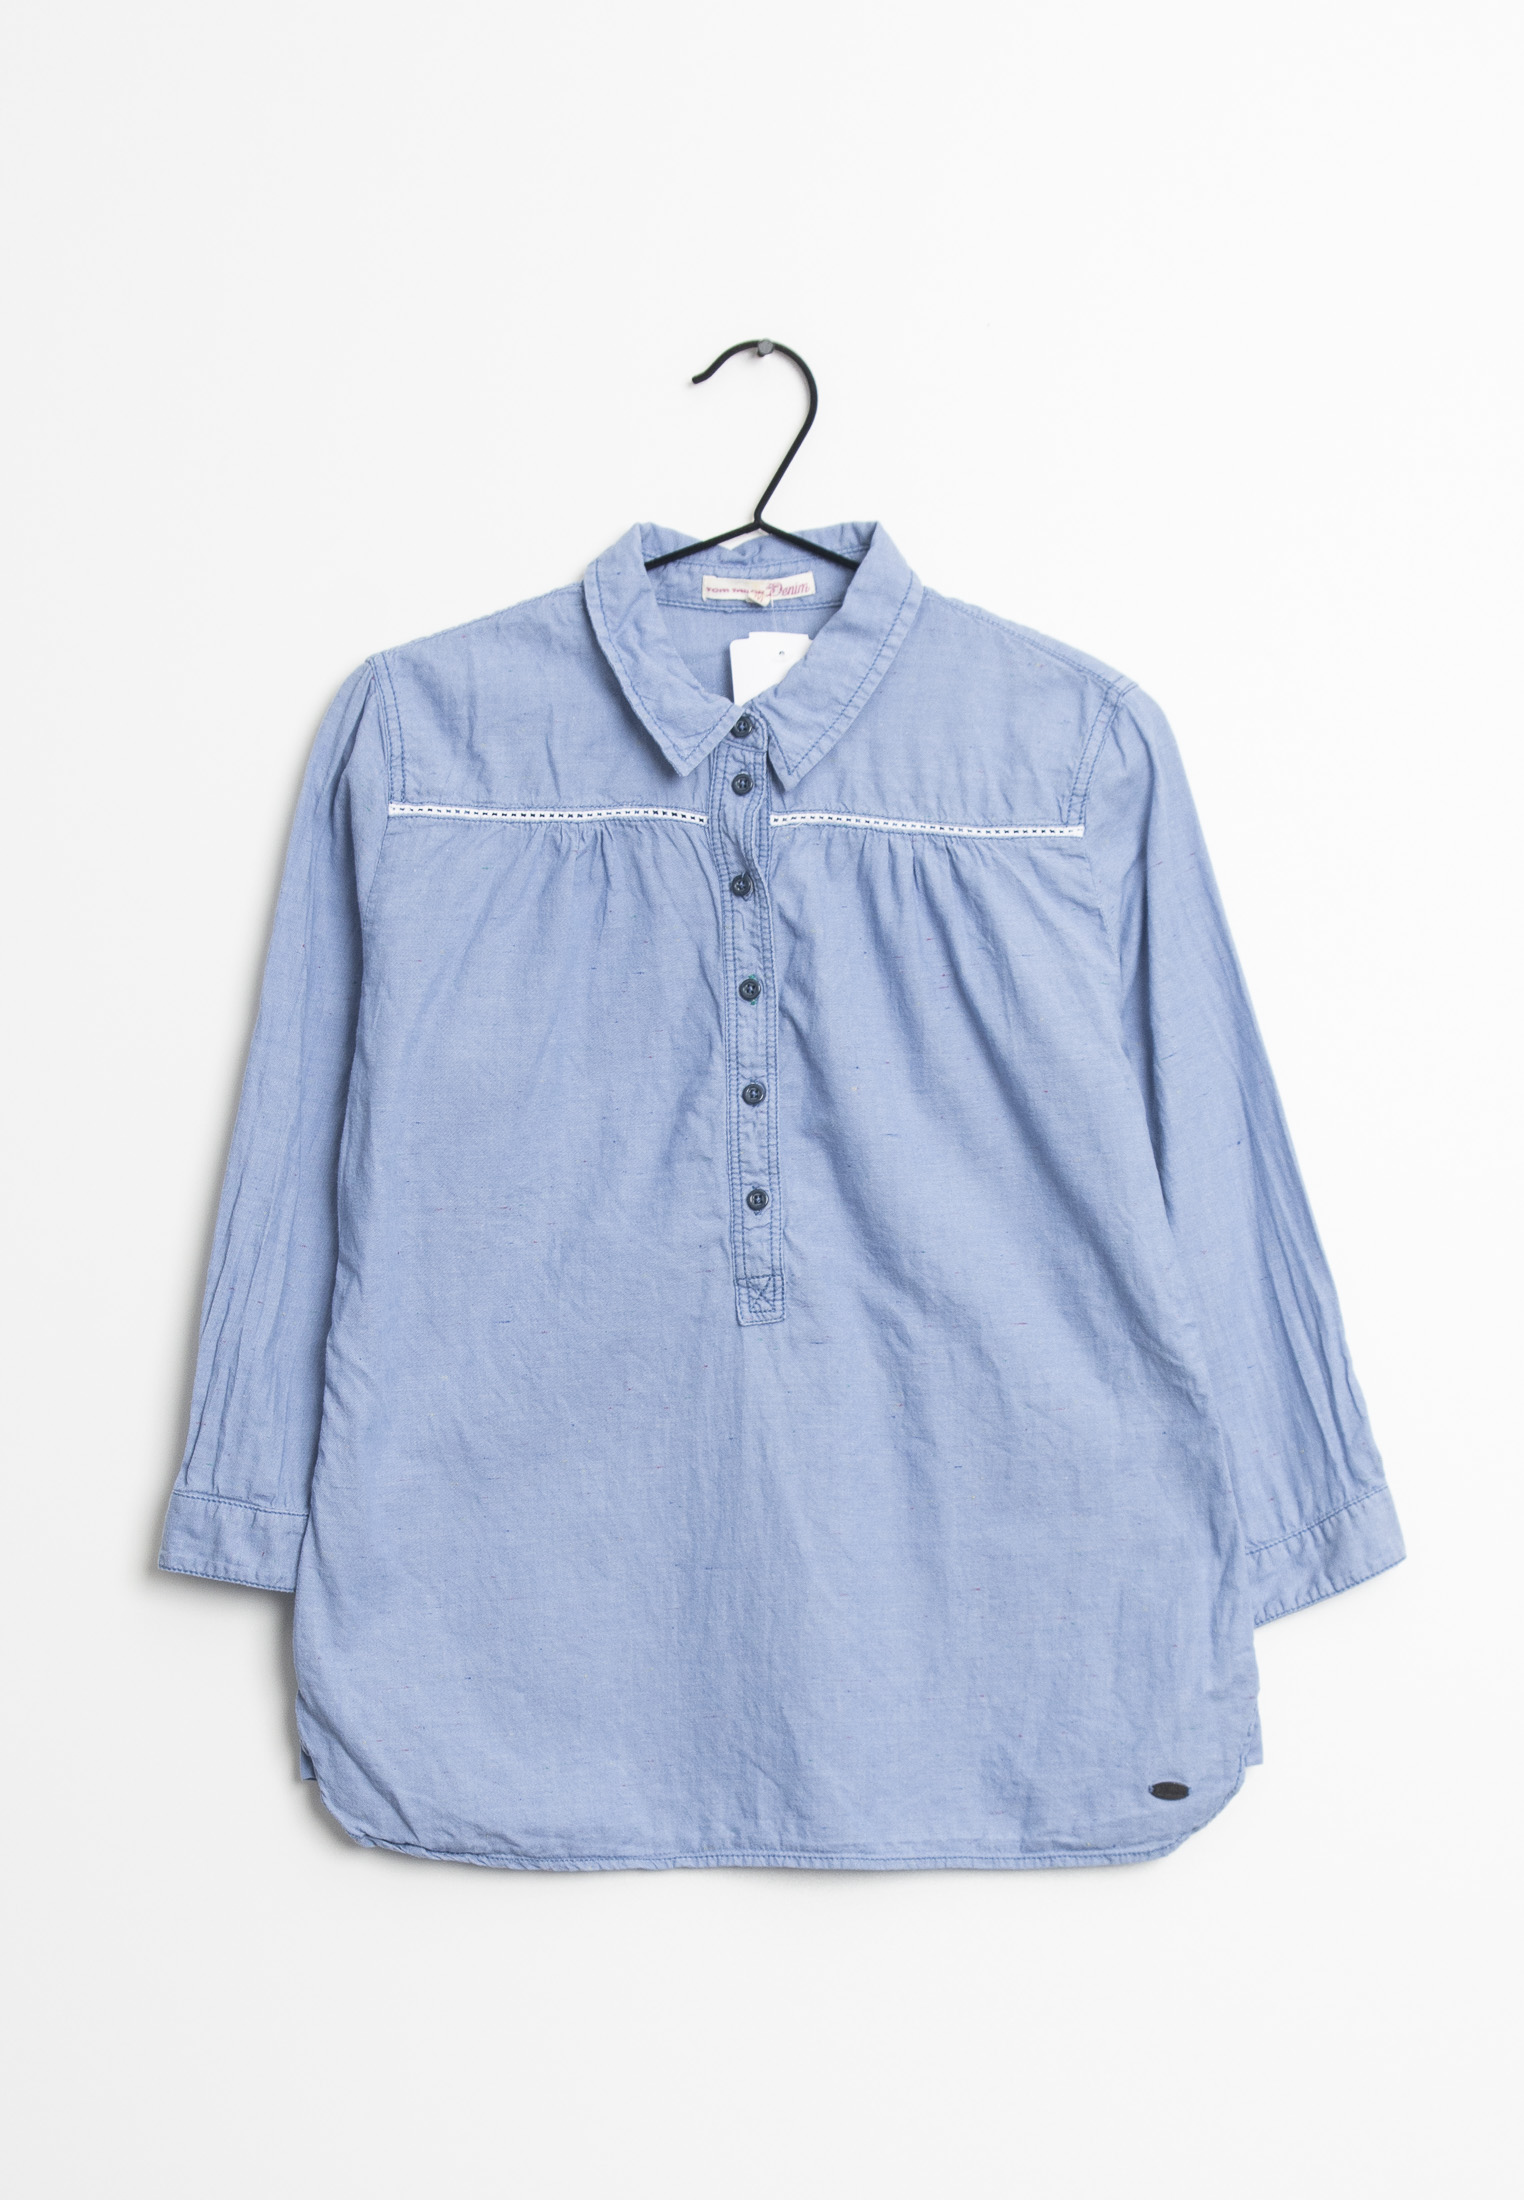 TOM TAILOR DENIM Bluse Blau Gr.M